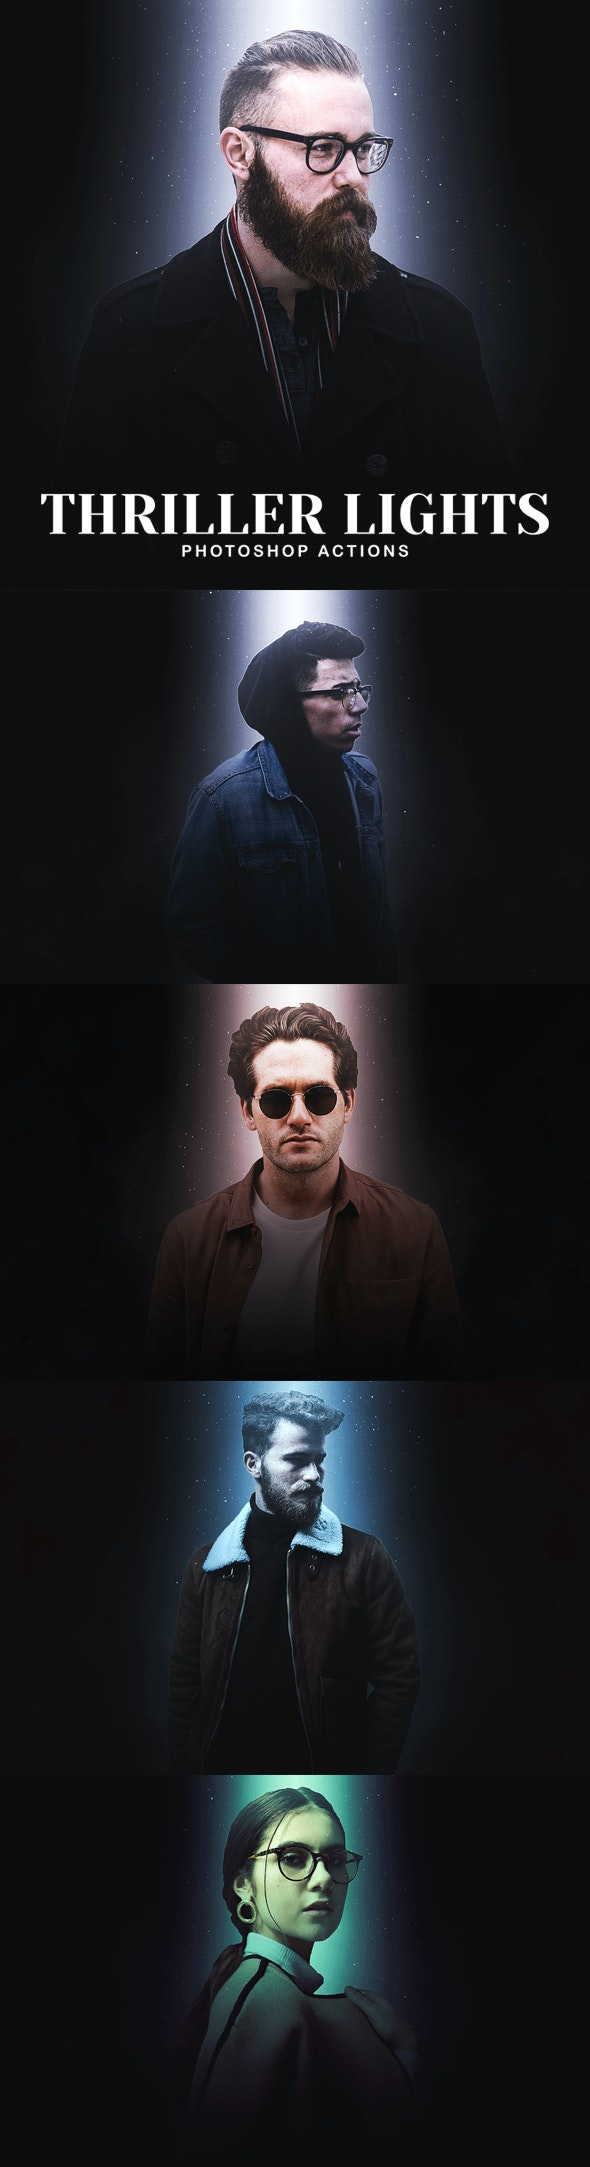 Thriller Lights Photoshop Actions - Photo Effects Actions